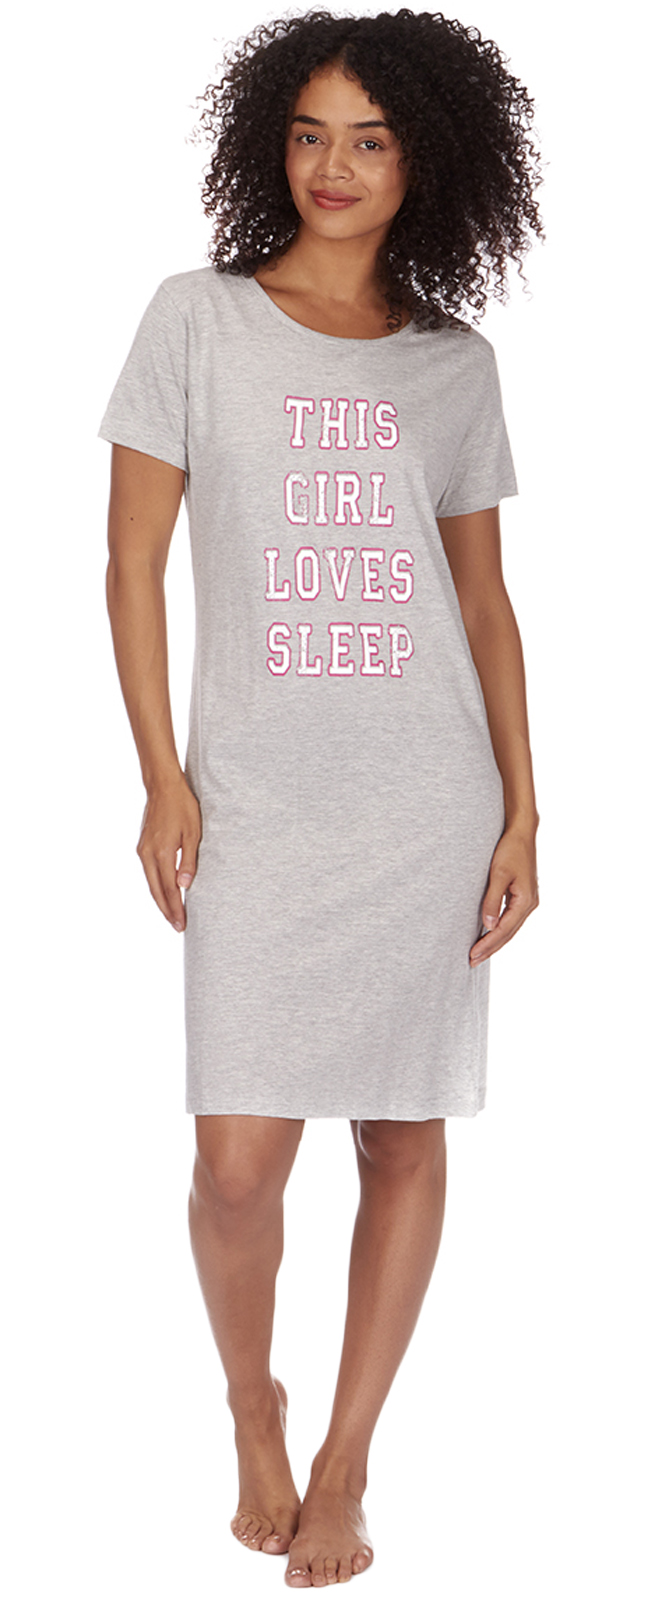 Find great deals on eBay for t shirt nighties. Shop with confidence.